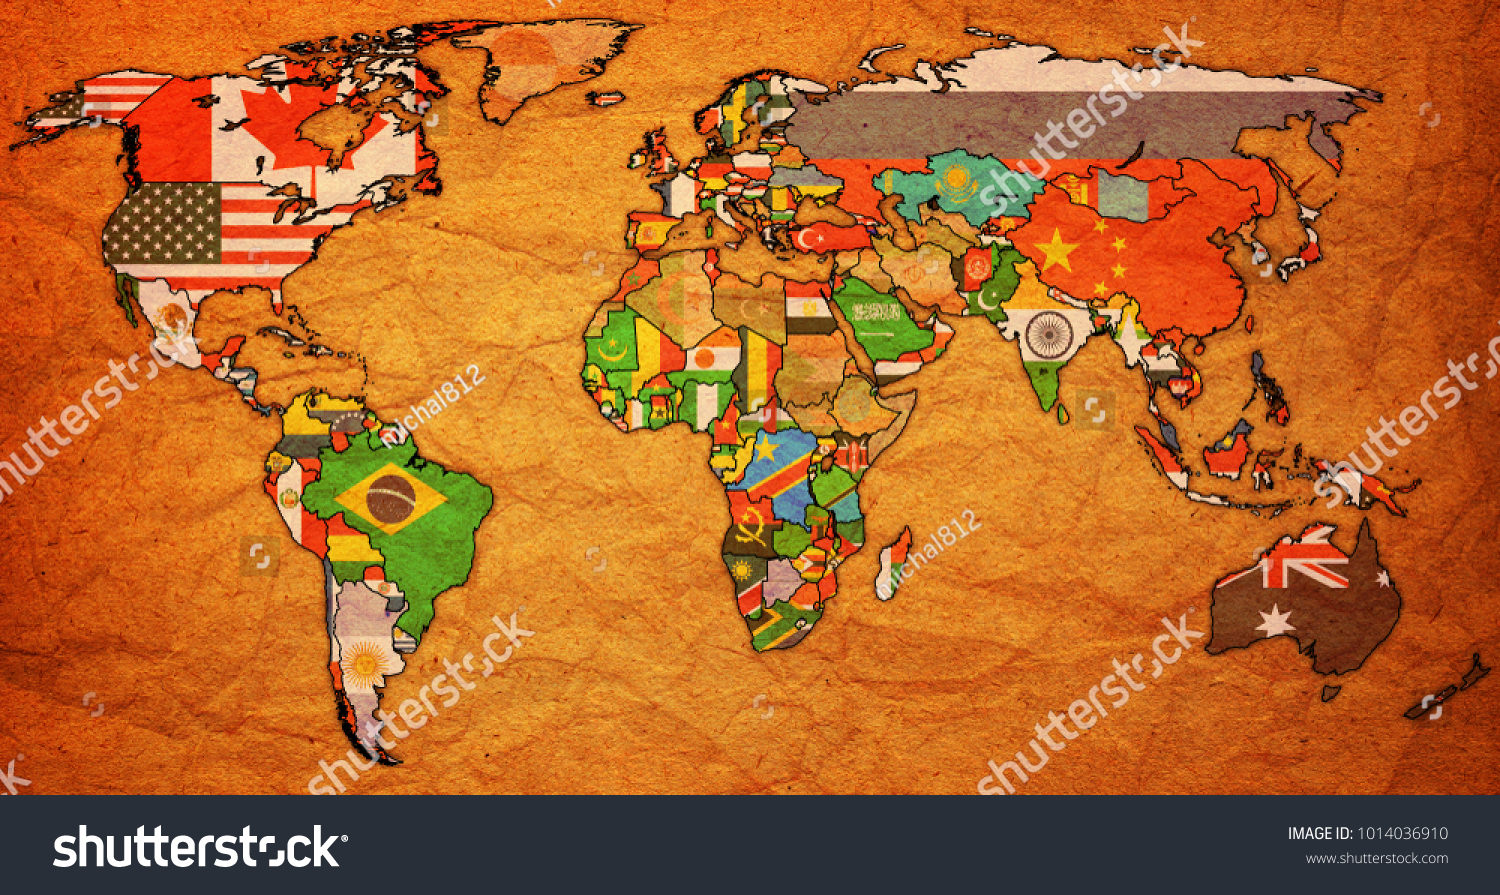 World trade organization member countries flags stock illustration world trade organization member countries flags on world map with national borders gumiabroncs Choice Image